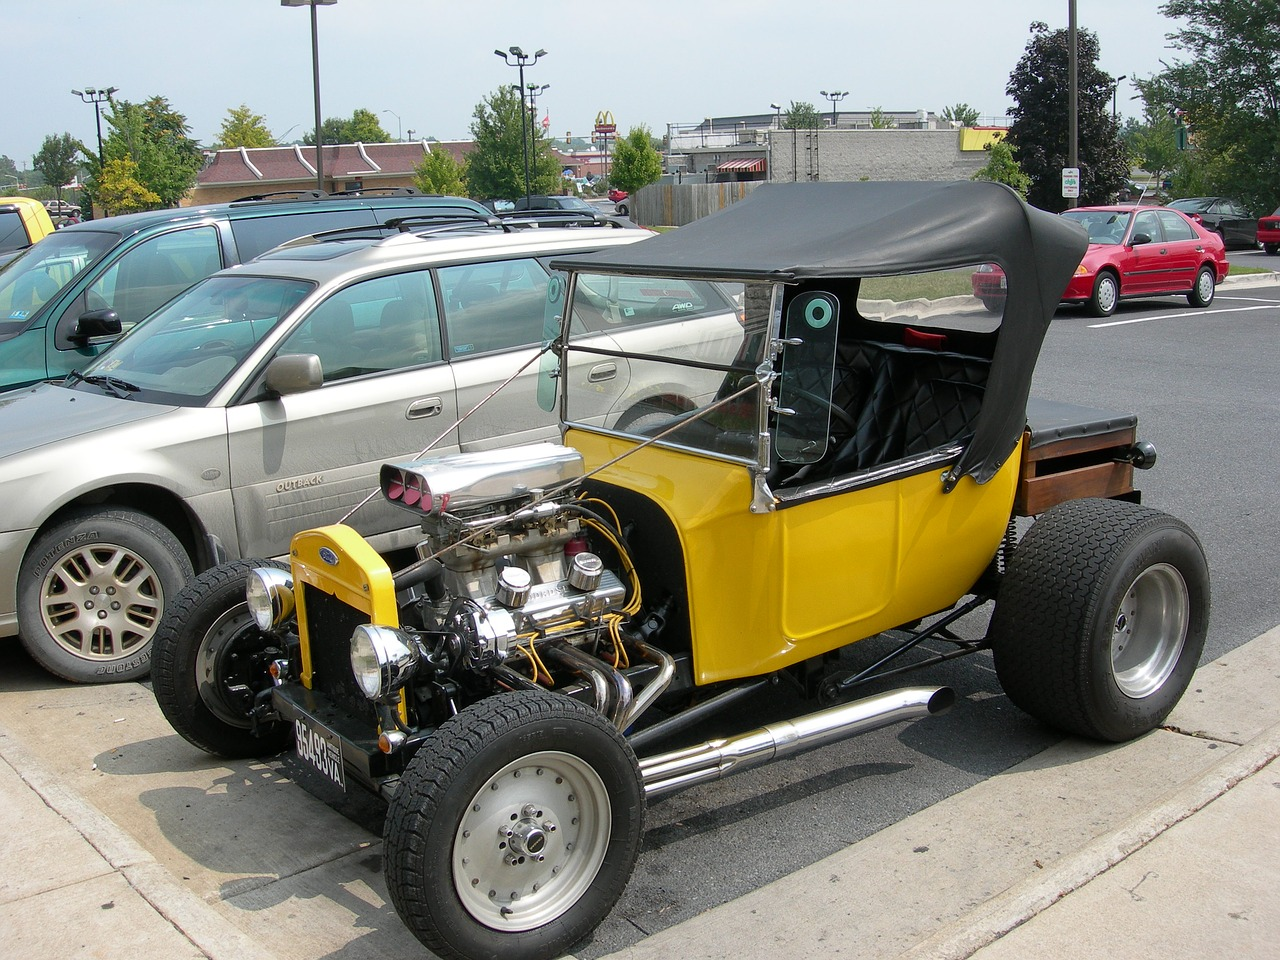 car hot rod antique free photo